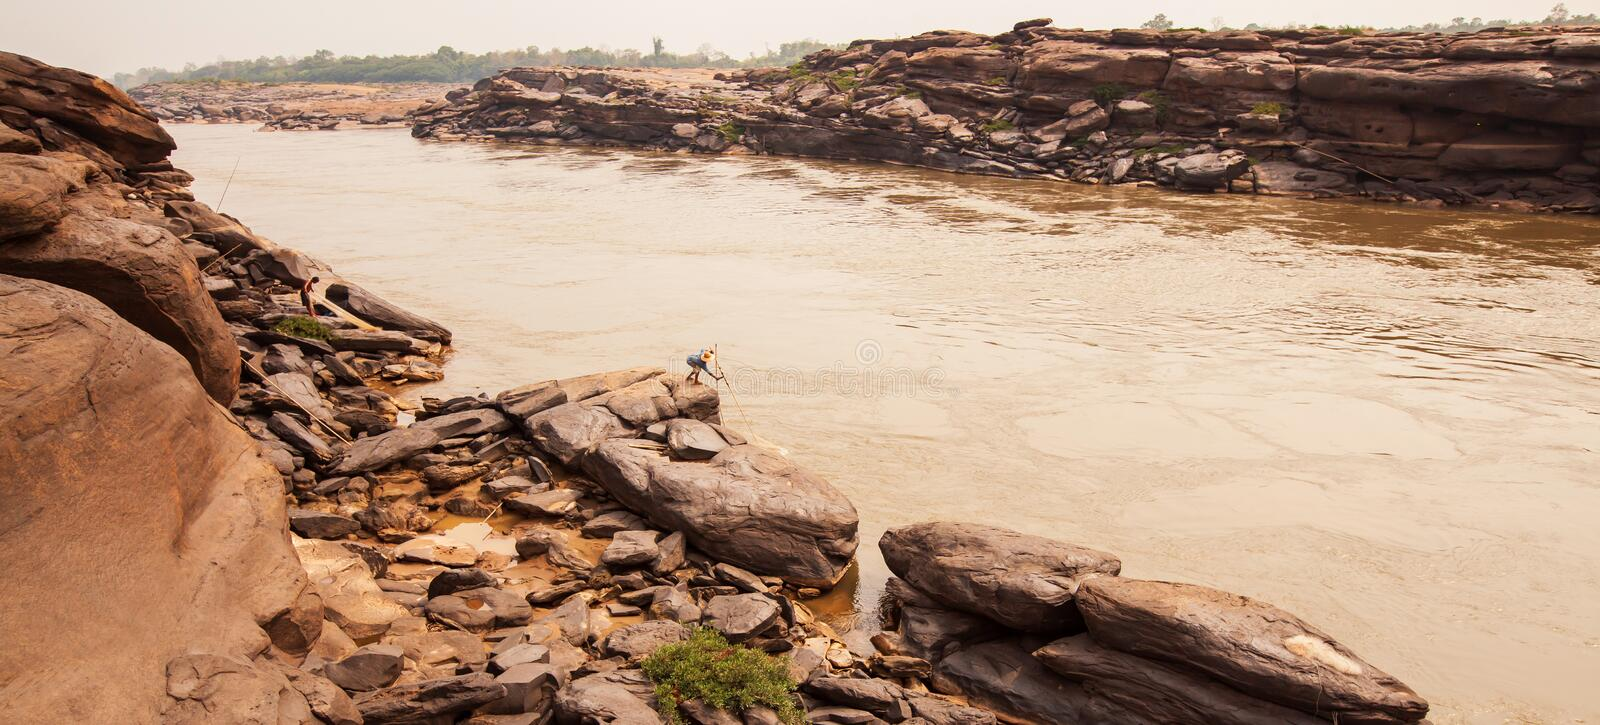 A local fisherman casting the fishing net in the Mekong River, fantastic scenery of steep by the river stock photography